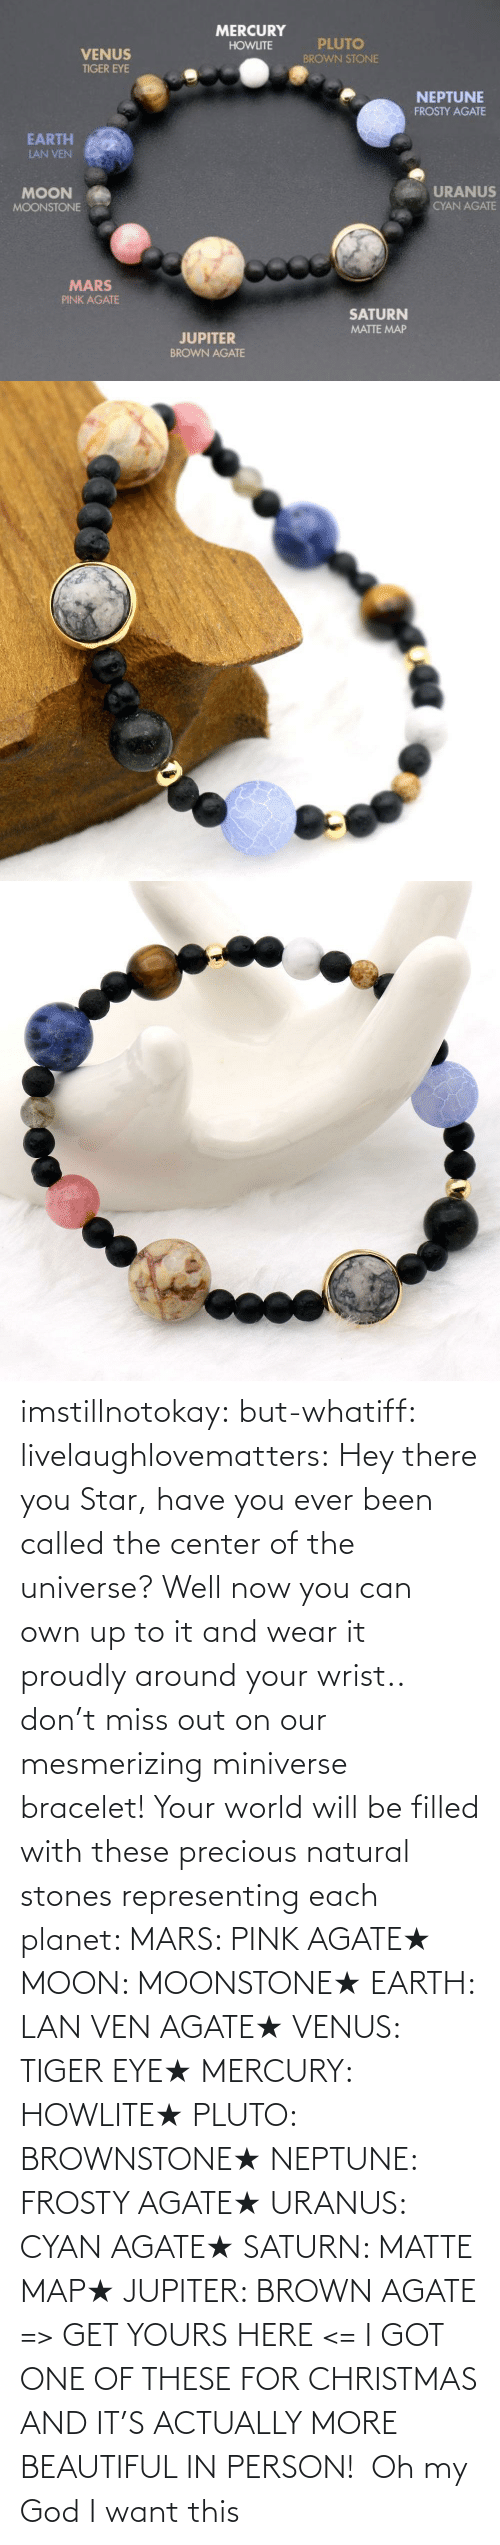 Actually: imstillnotokay: but-whatiff:  livelaughlovematters:  Hey there you Star, have you ever been called the center of the universe? Well now you can own up to it and wear it proudly around your wrist.. don't miss out on our mesmerizing miniverse bracelet! Your world will be filled with these precious natural stones representing each planet:  MARS: PINK AGATE★ MOON: MOONSTONE★ EARTH: LAN VEN AGATE★ VENUS: TIGER EYE★ MERCURY: HOWLITE★ PLUTO: BROWNSTONE★ NEPTUNE: FROSTY AGATE★ URANUS: CYAN AGATE★ SATURN: MATTE MAP★ JUPITER: BROWN AGATE => GET YOURS HERE <=  I GOT ONE OF THESE FOR CHRISTMAS AND IT'S ACTUALLY MORE BEAUTIFUL IN PERSON!     Oh my God I want this